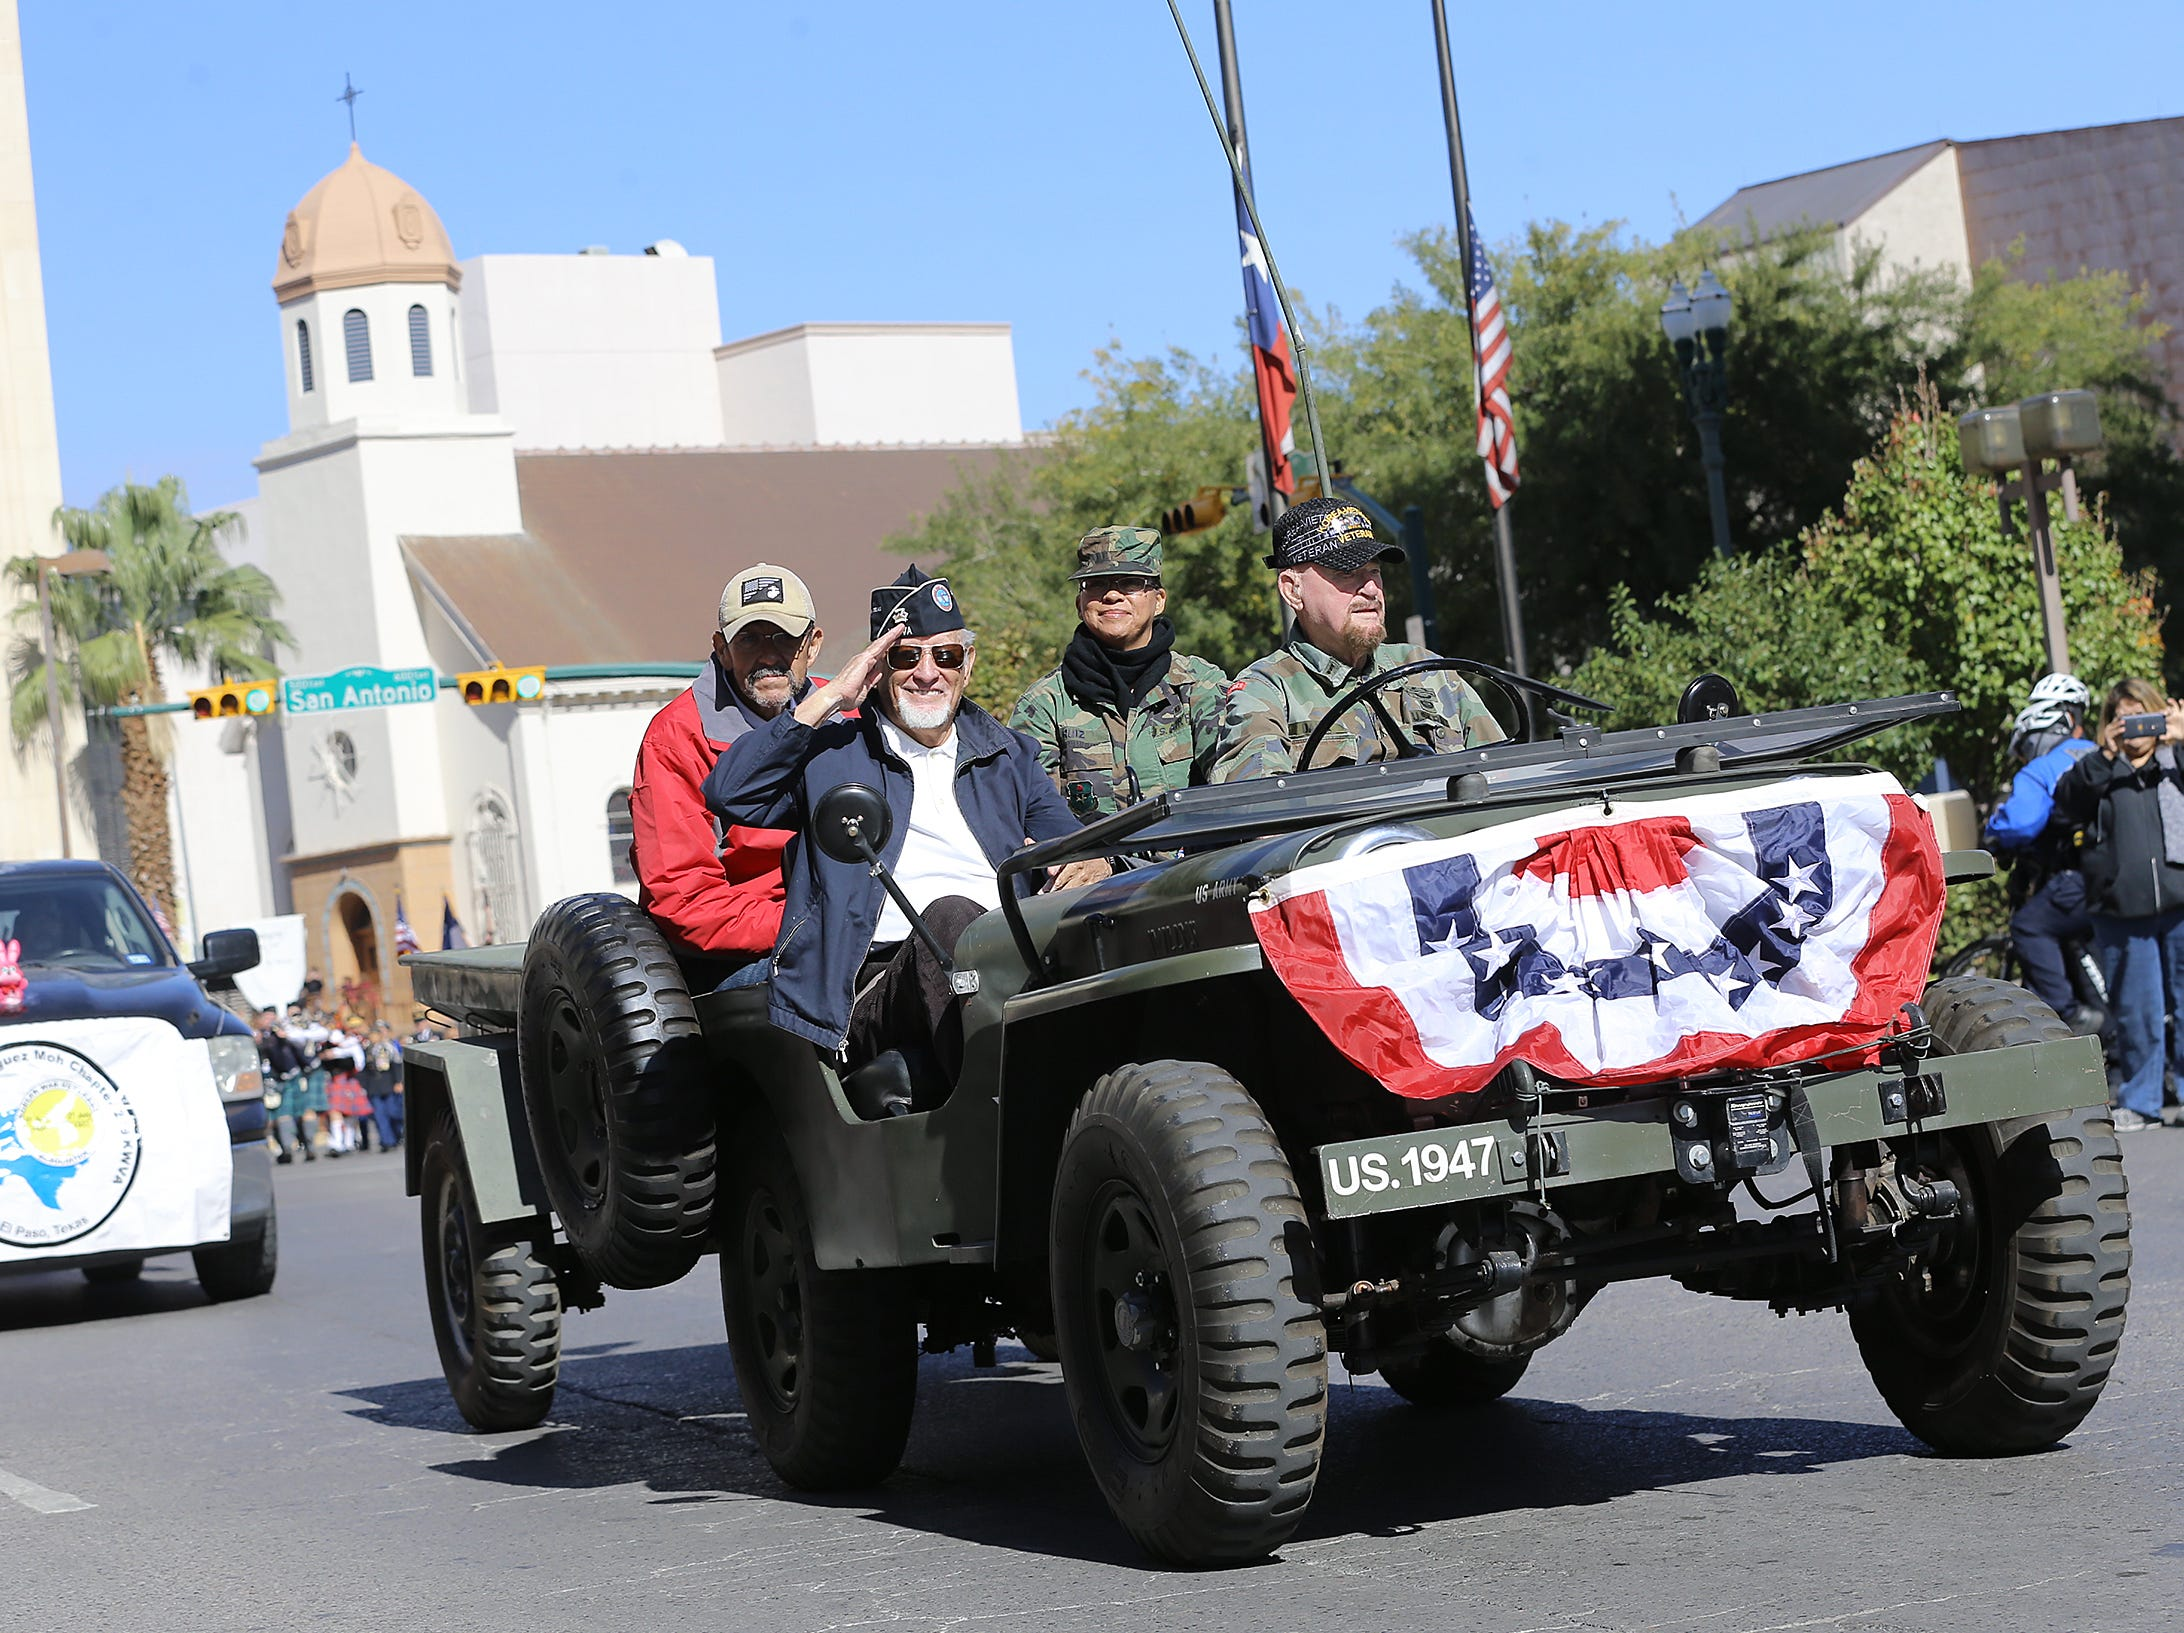 A veteran salutes from a Jeep on Saturday in Downtown El Paso during the annual Veterans Day Parade.